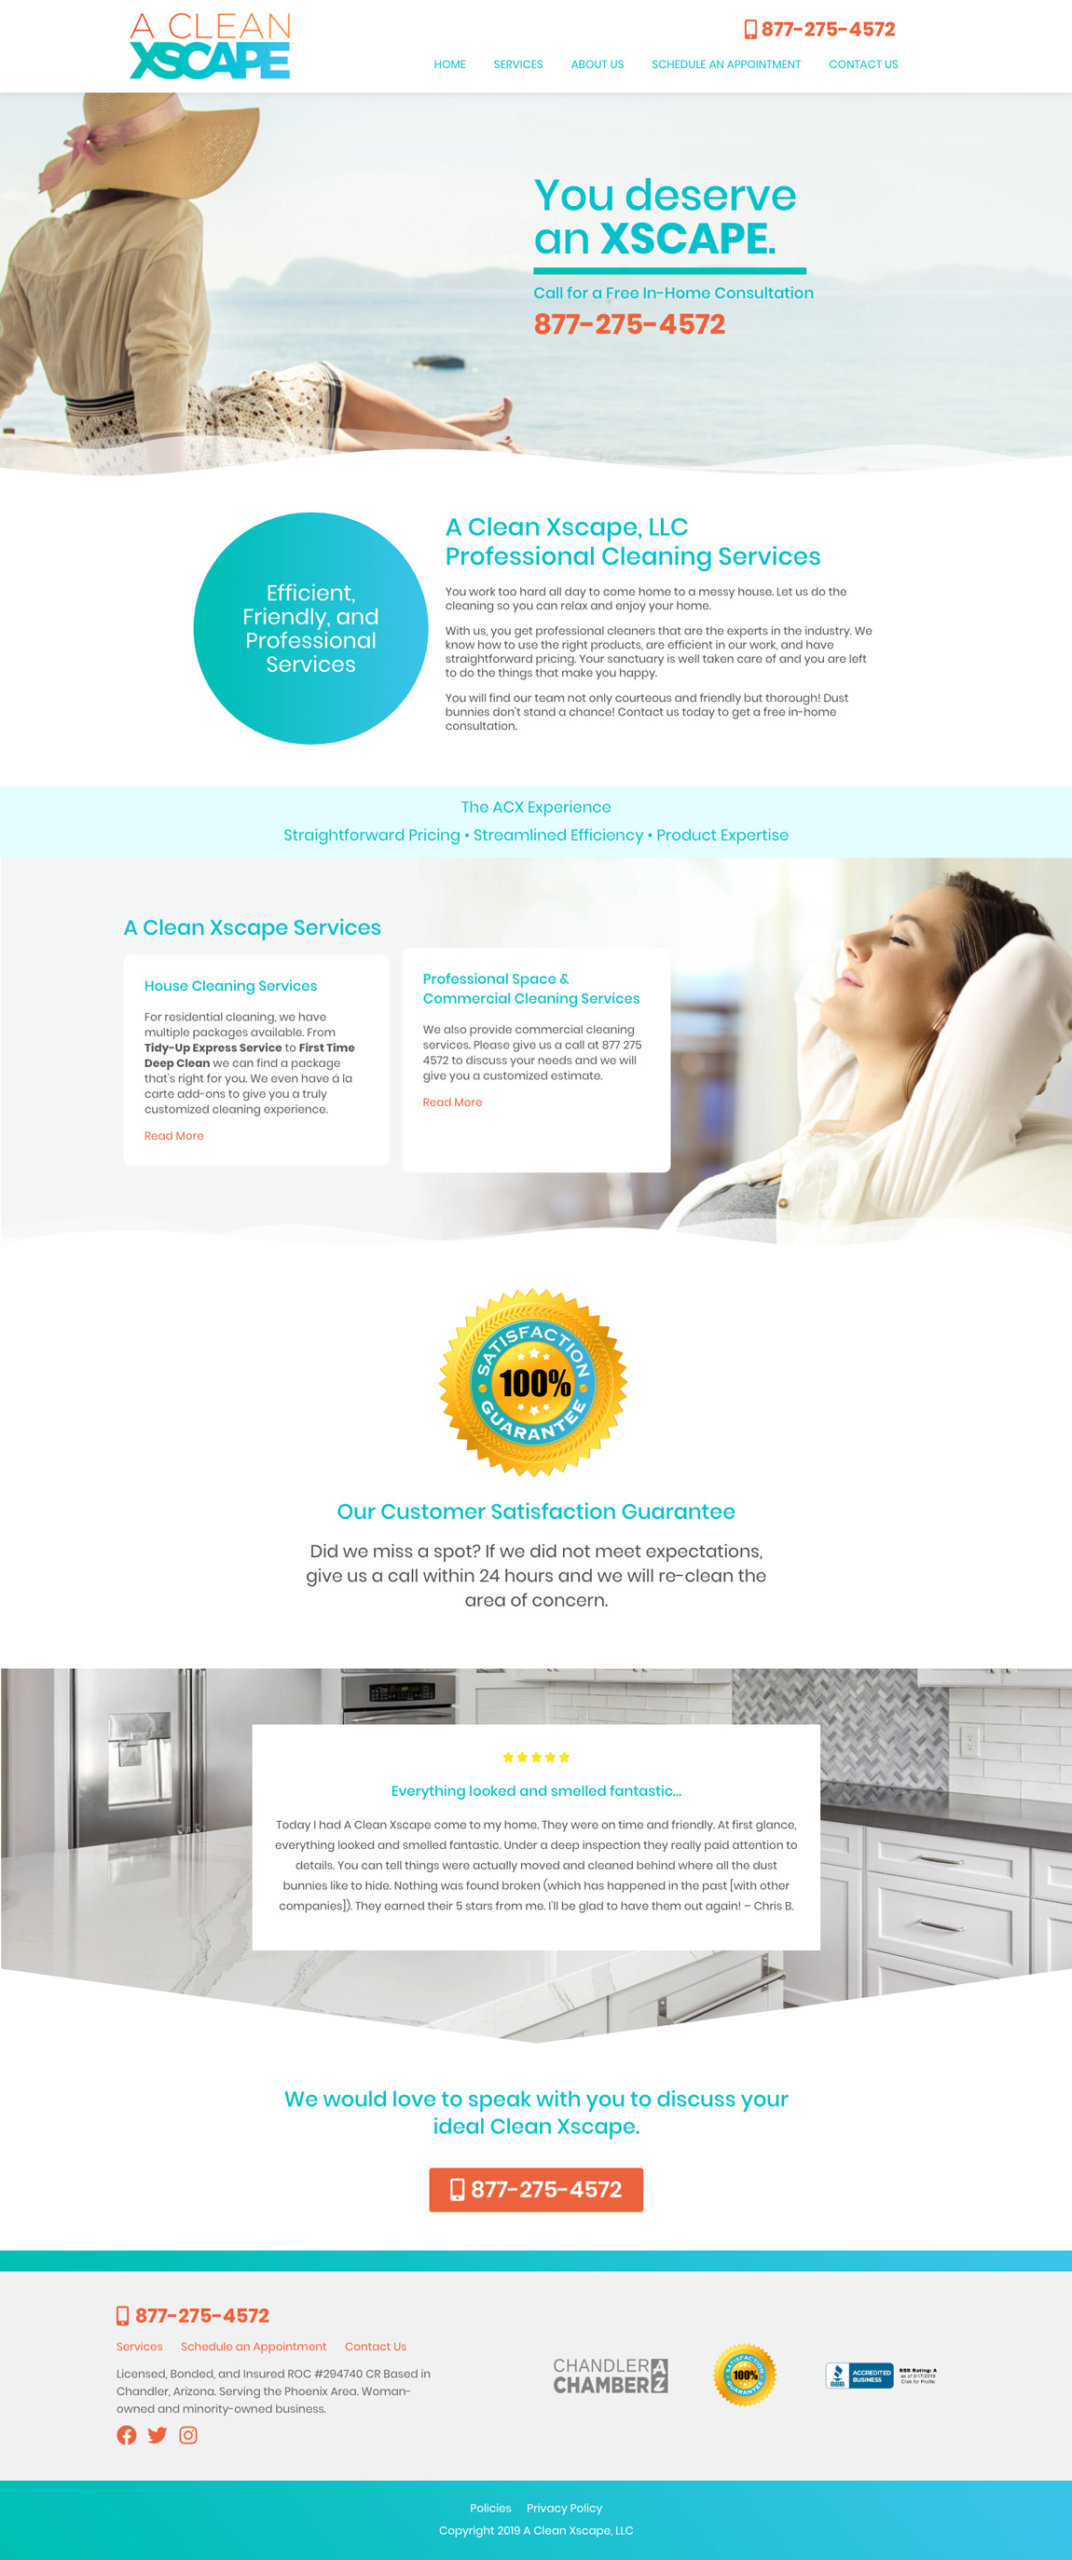 A Clean Xscape Web Design Concept